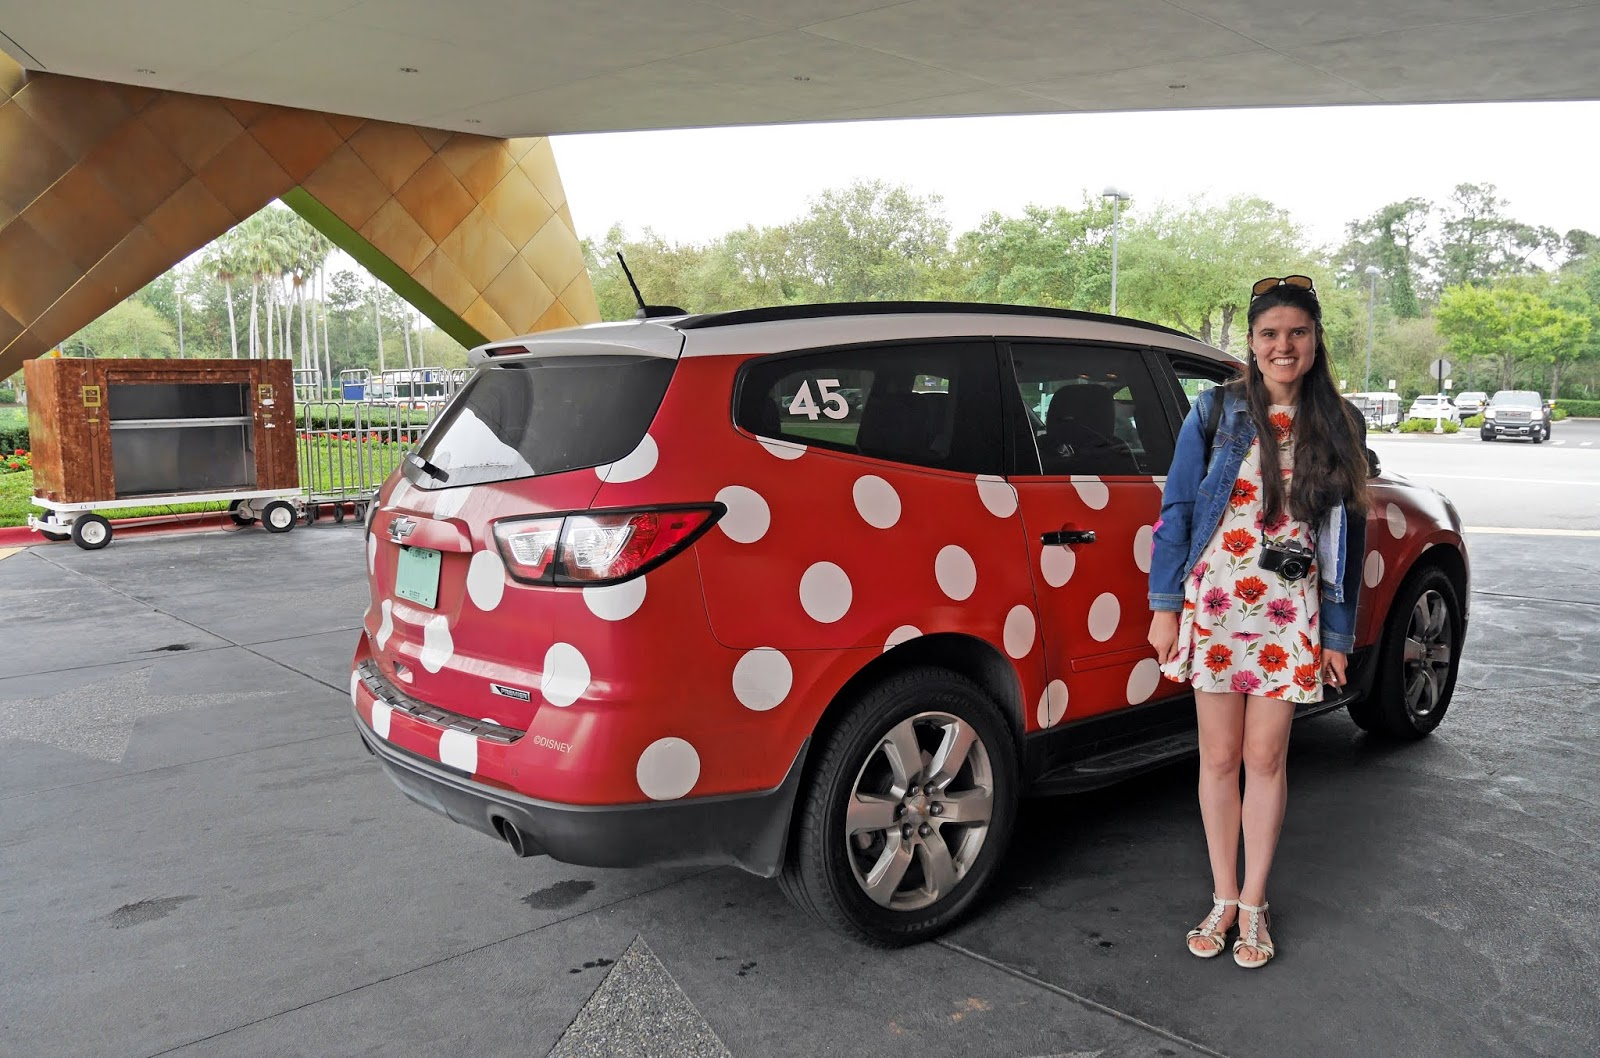 Kat Last next to one of the Walt Disney World Minnie Vans, Florida